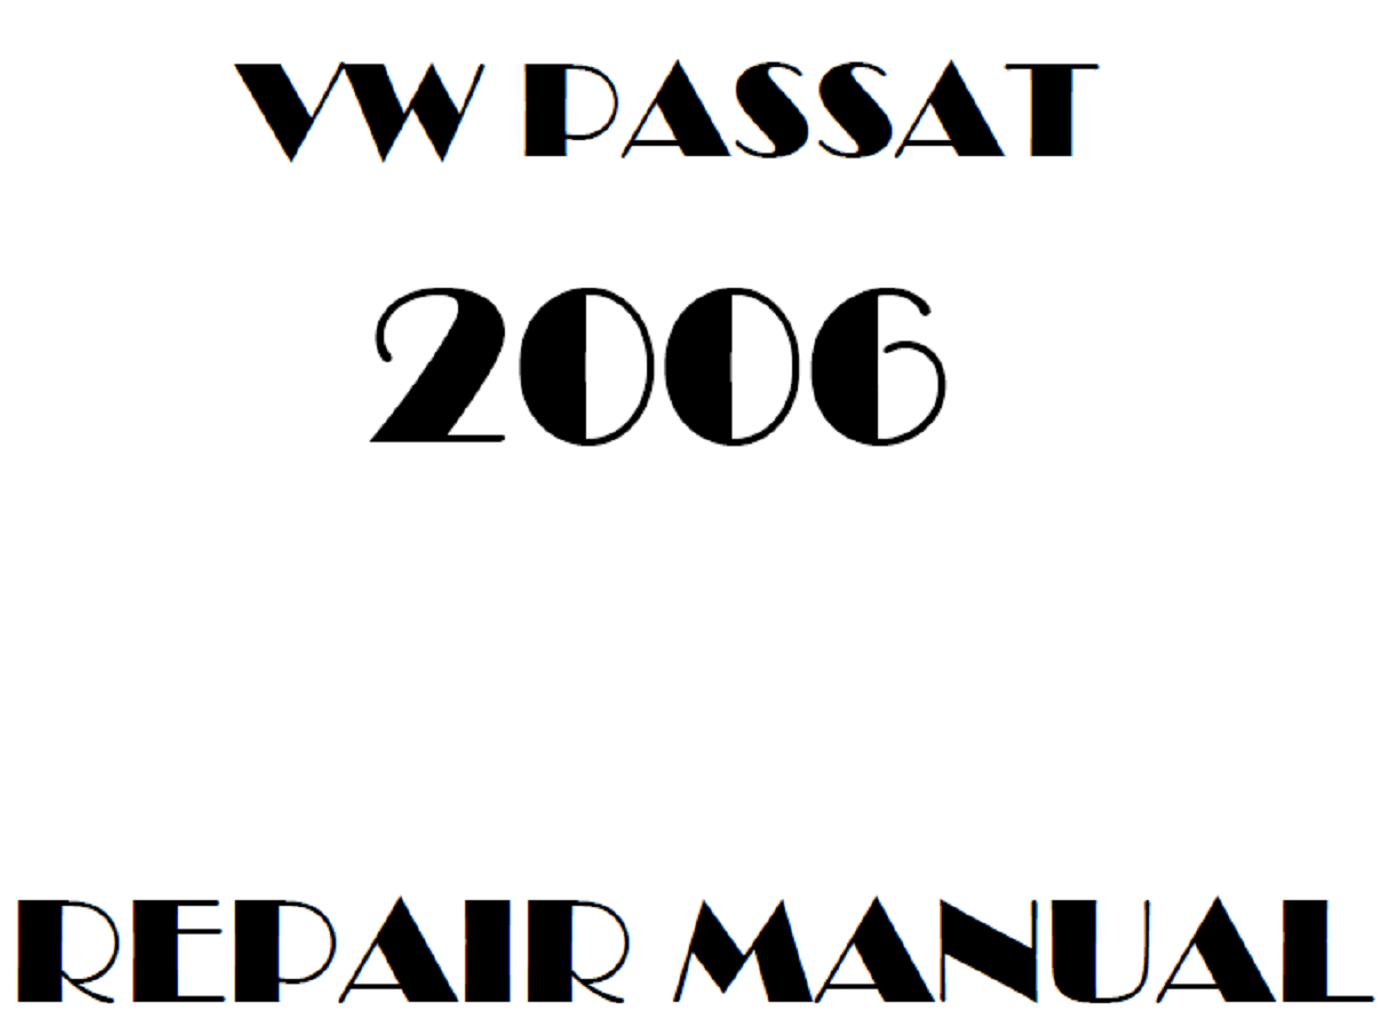 2006 Volkswagen Passat repair manual